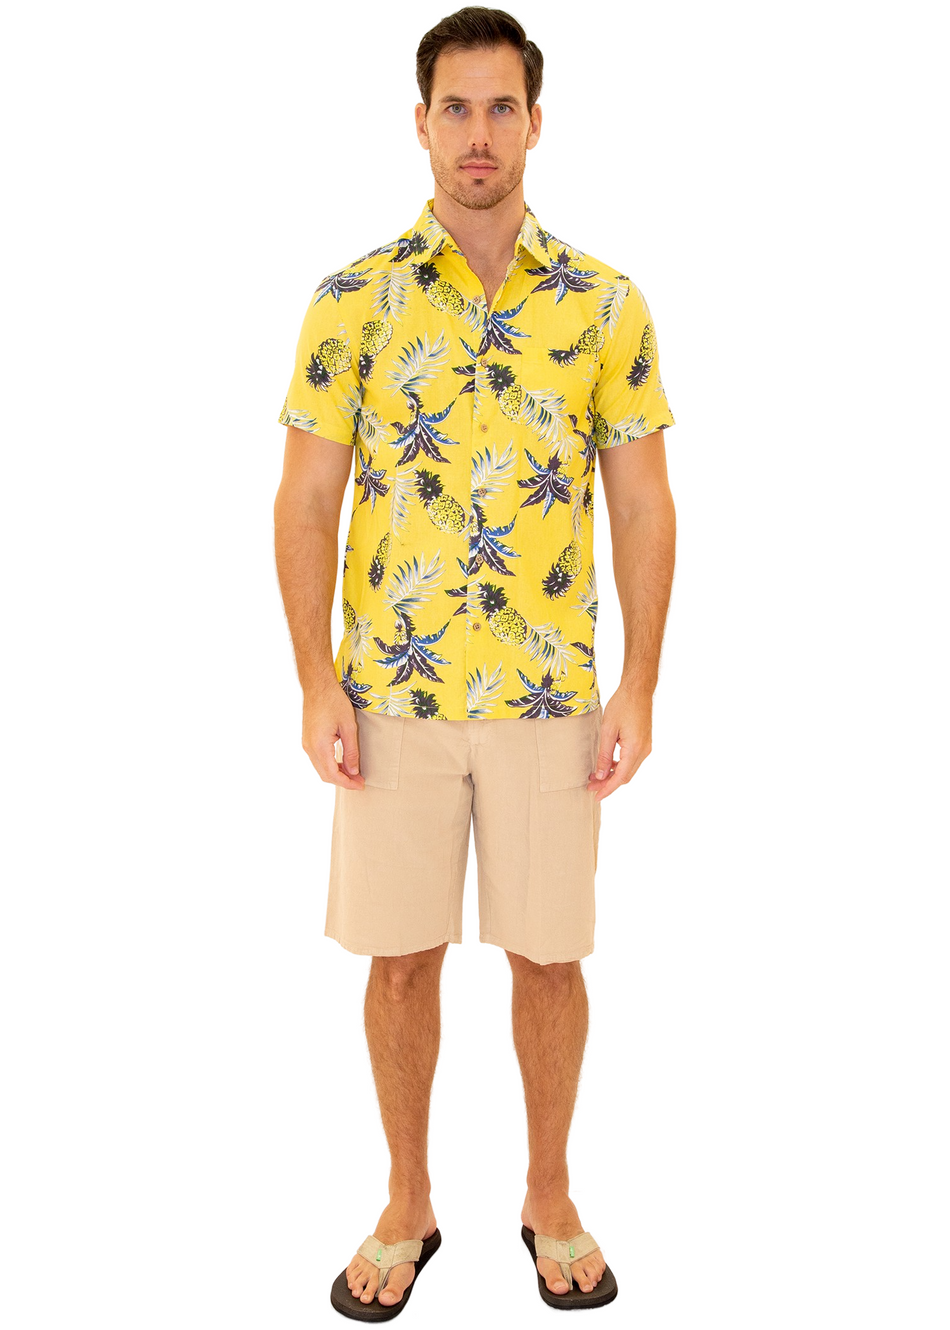 206009 - Yellow Cotton Hawaiian Pocket Shirt